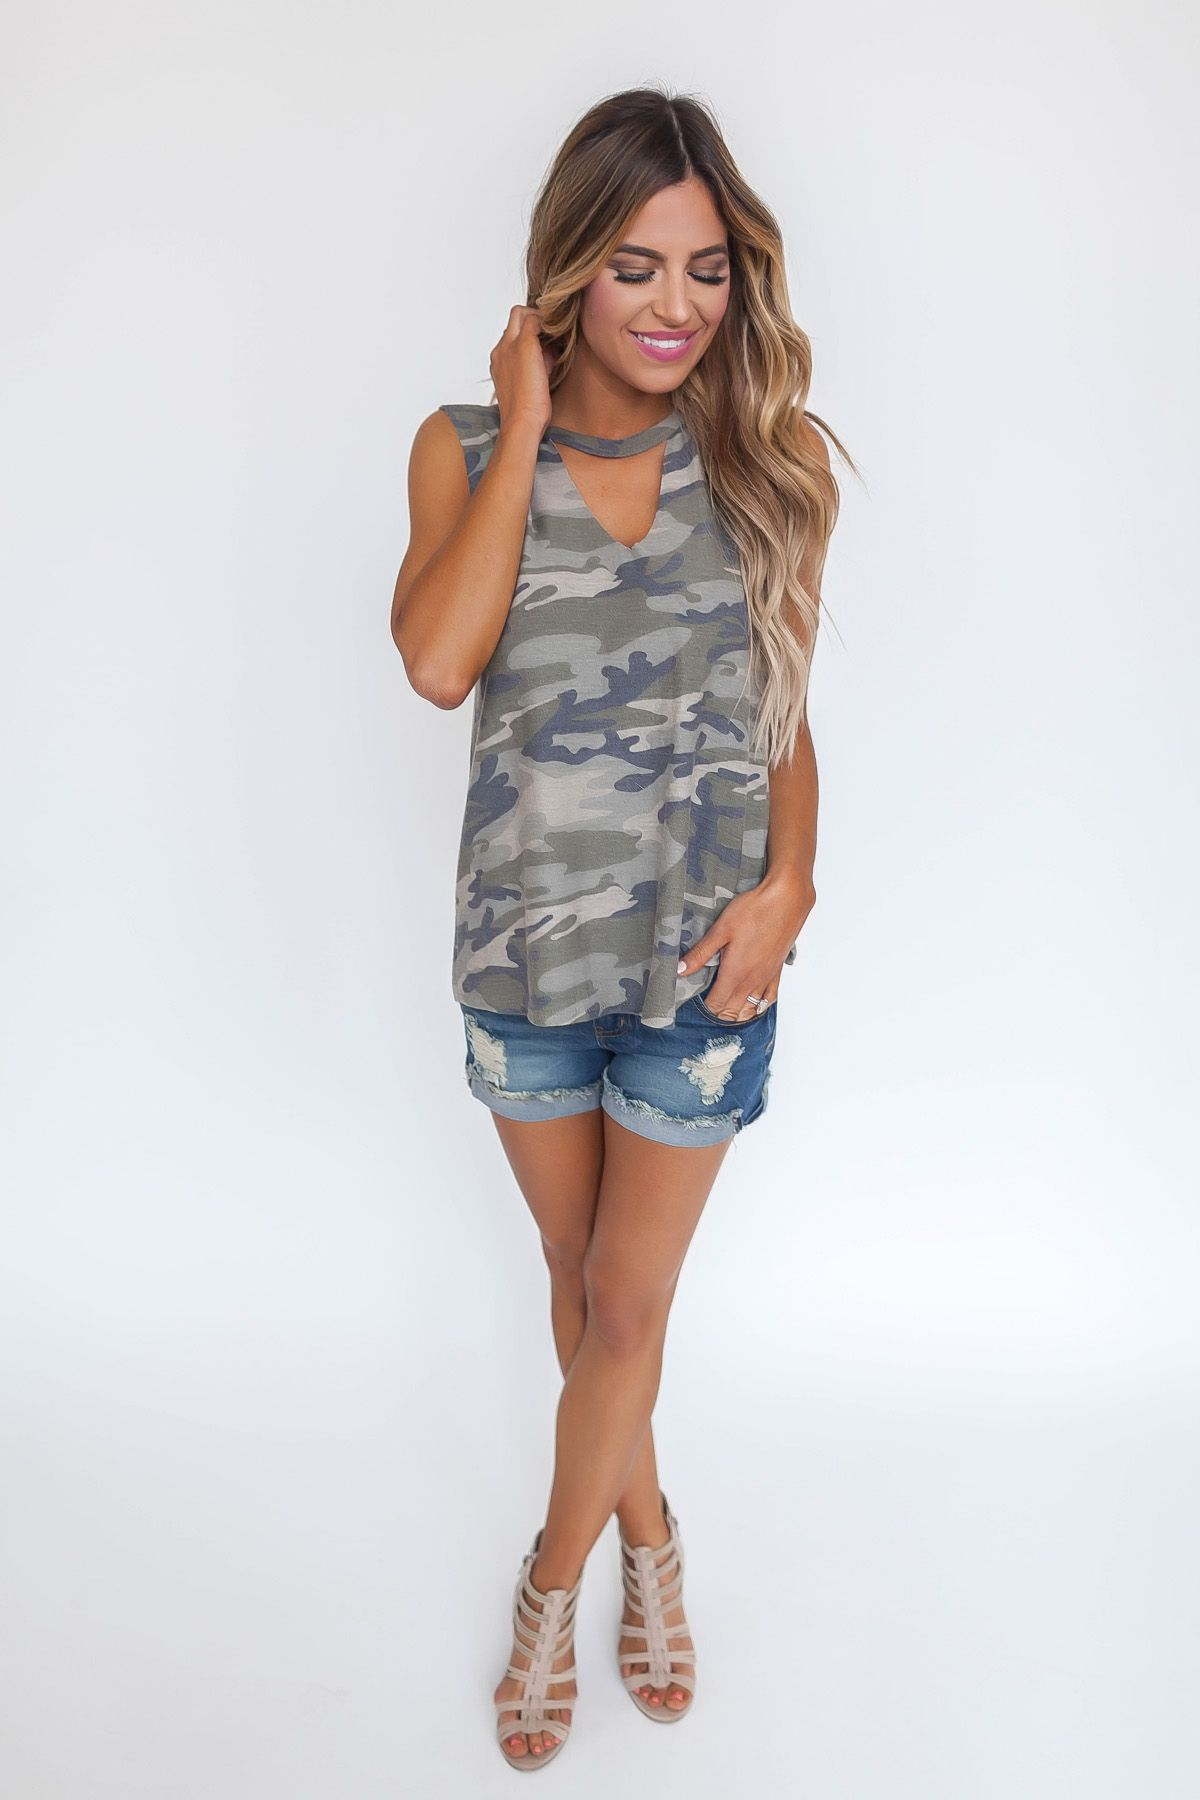 Camo keyhole tank му ѕтуℓє pinterest camo dottie couture